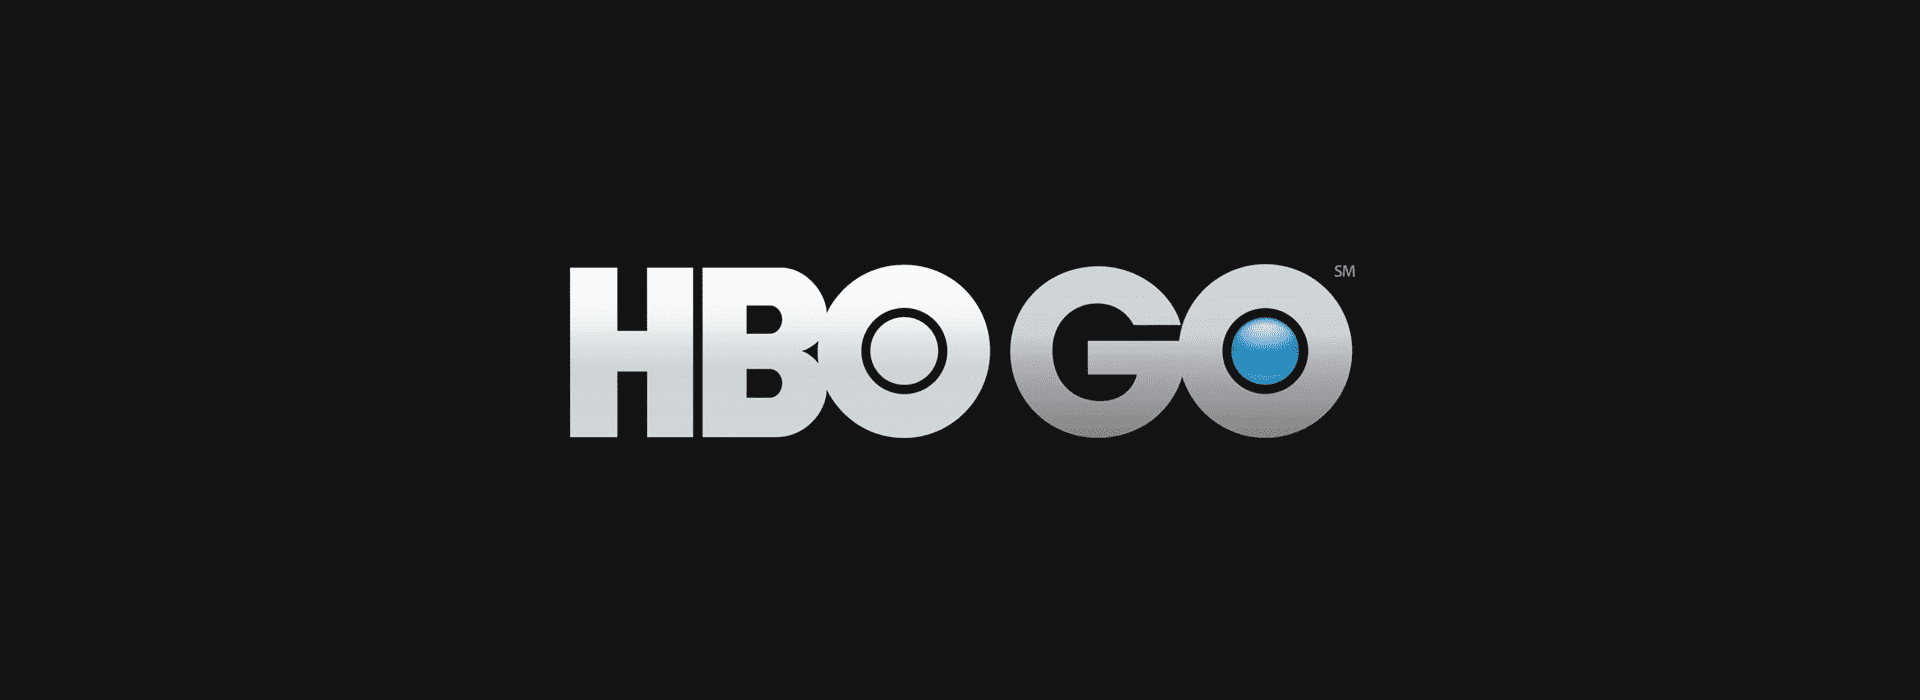 HBO GO MoneyHero.com.hk